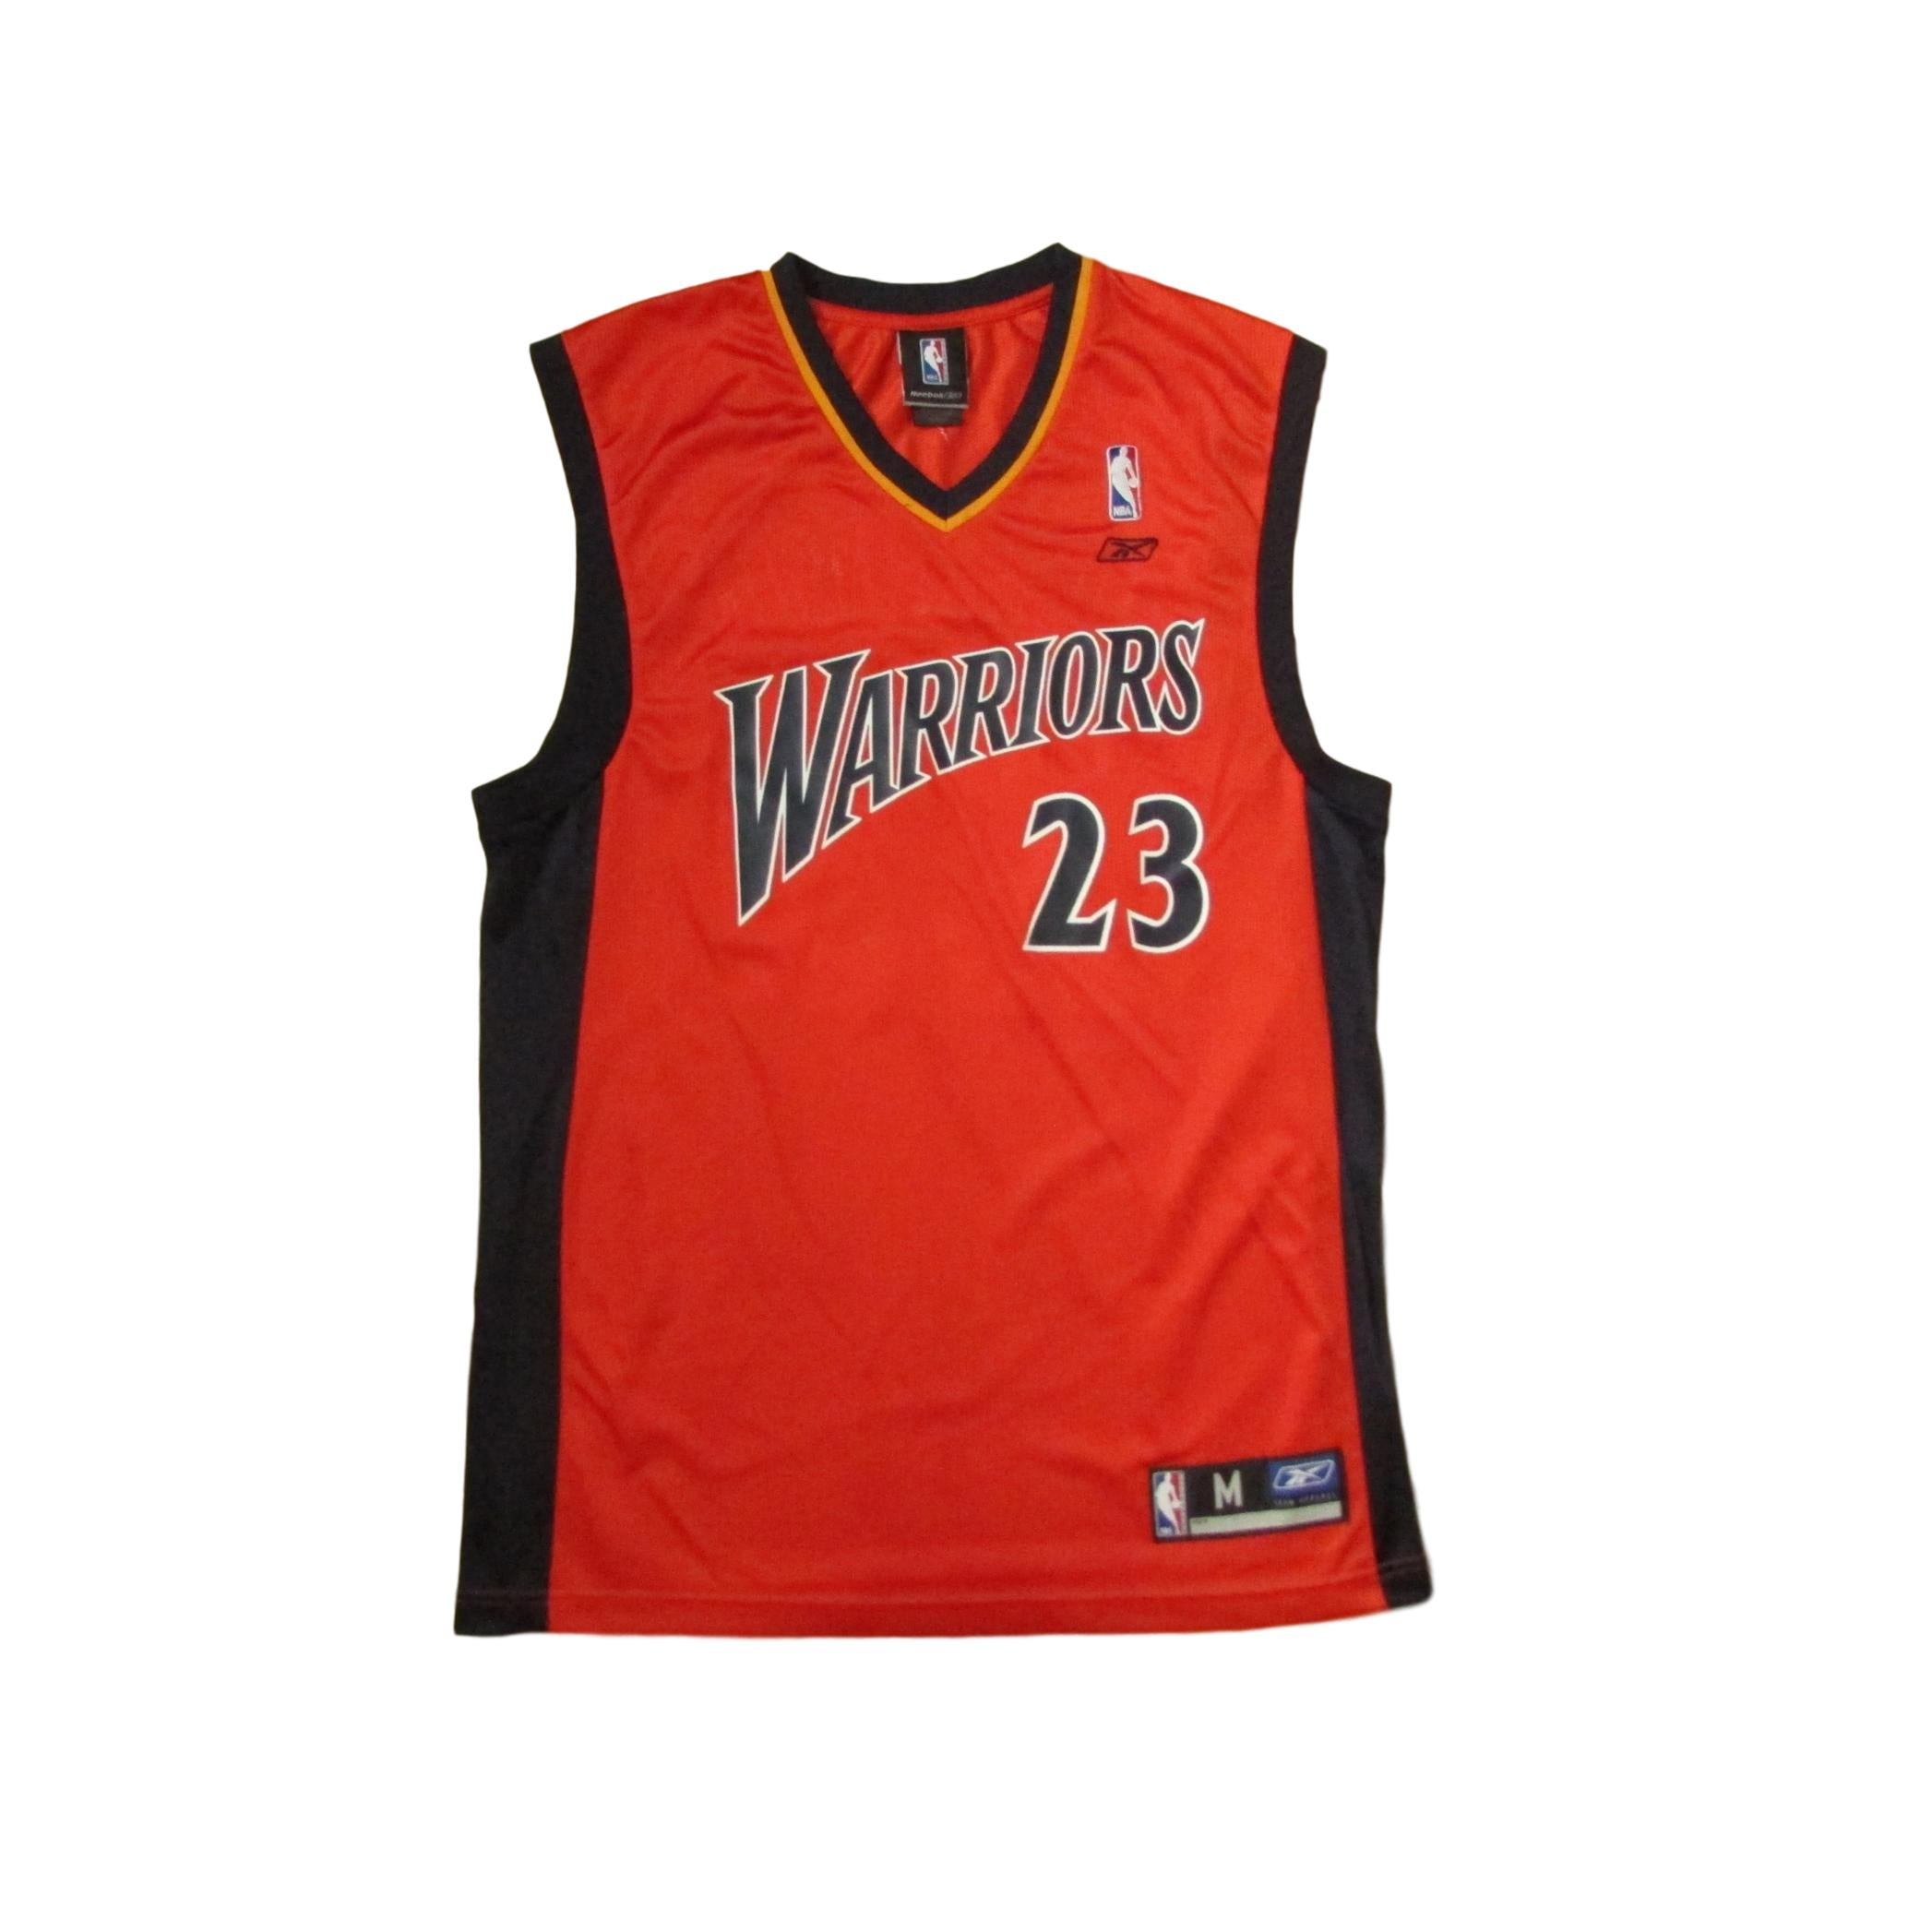 meet 50e81 f13d6 Golden State Warriors Jason Richardson We Believe Alternative Color Reebok  Jersey Sz M